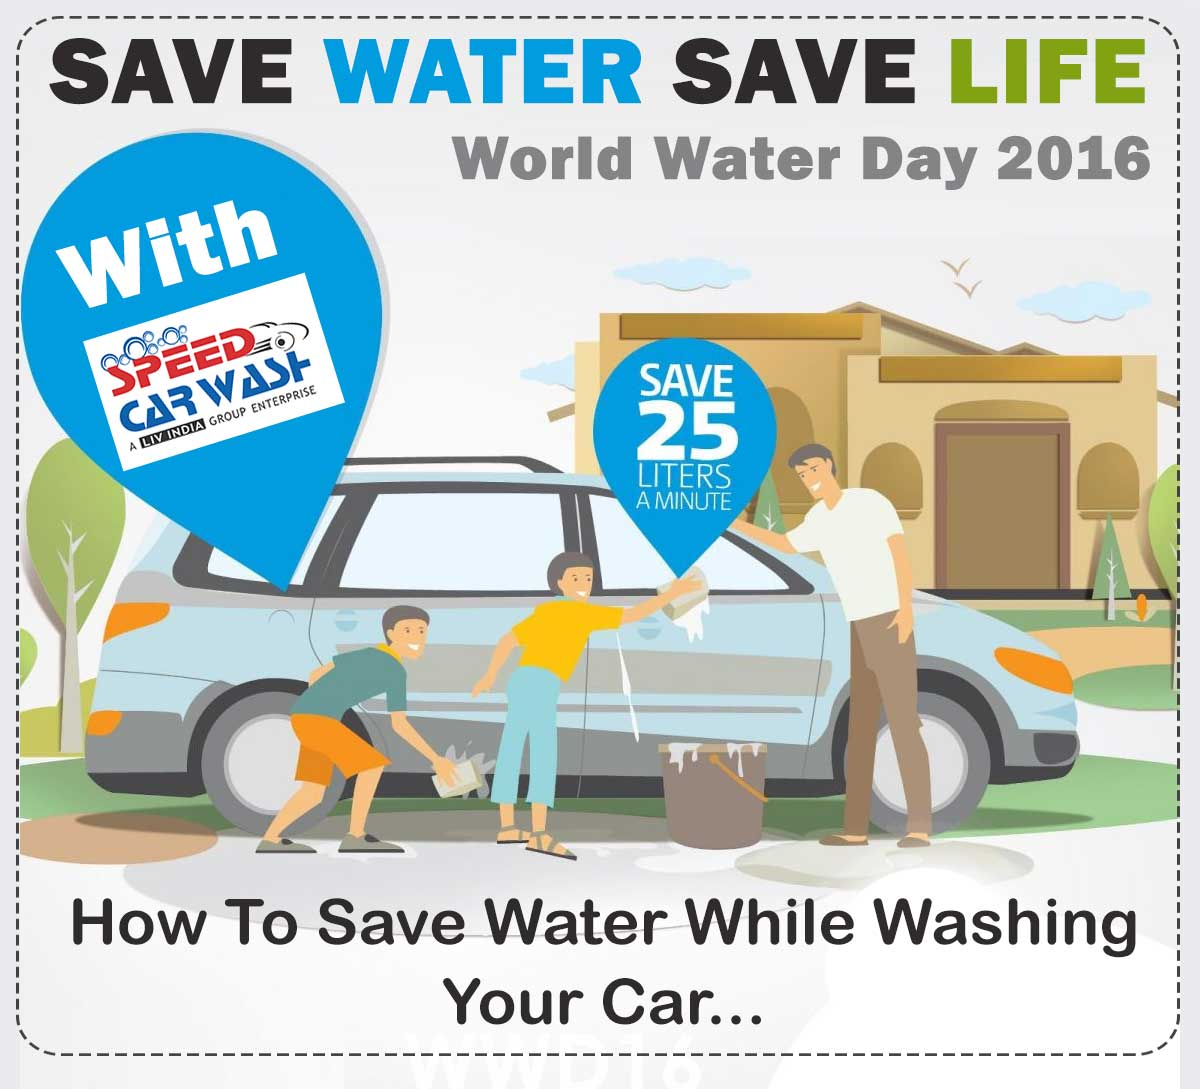 How To Save Water While Washing Your Car